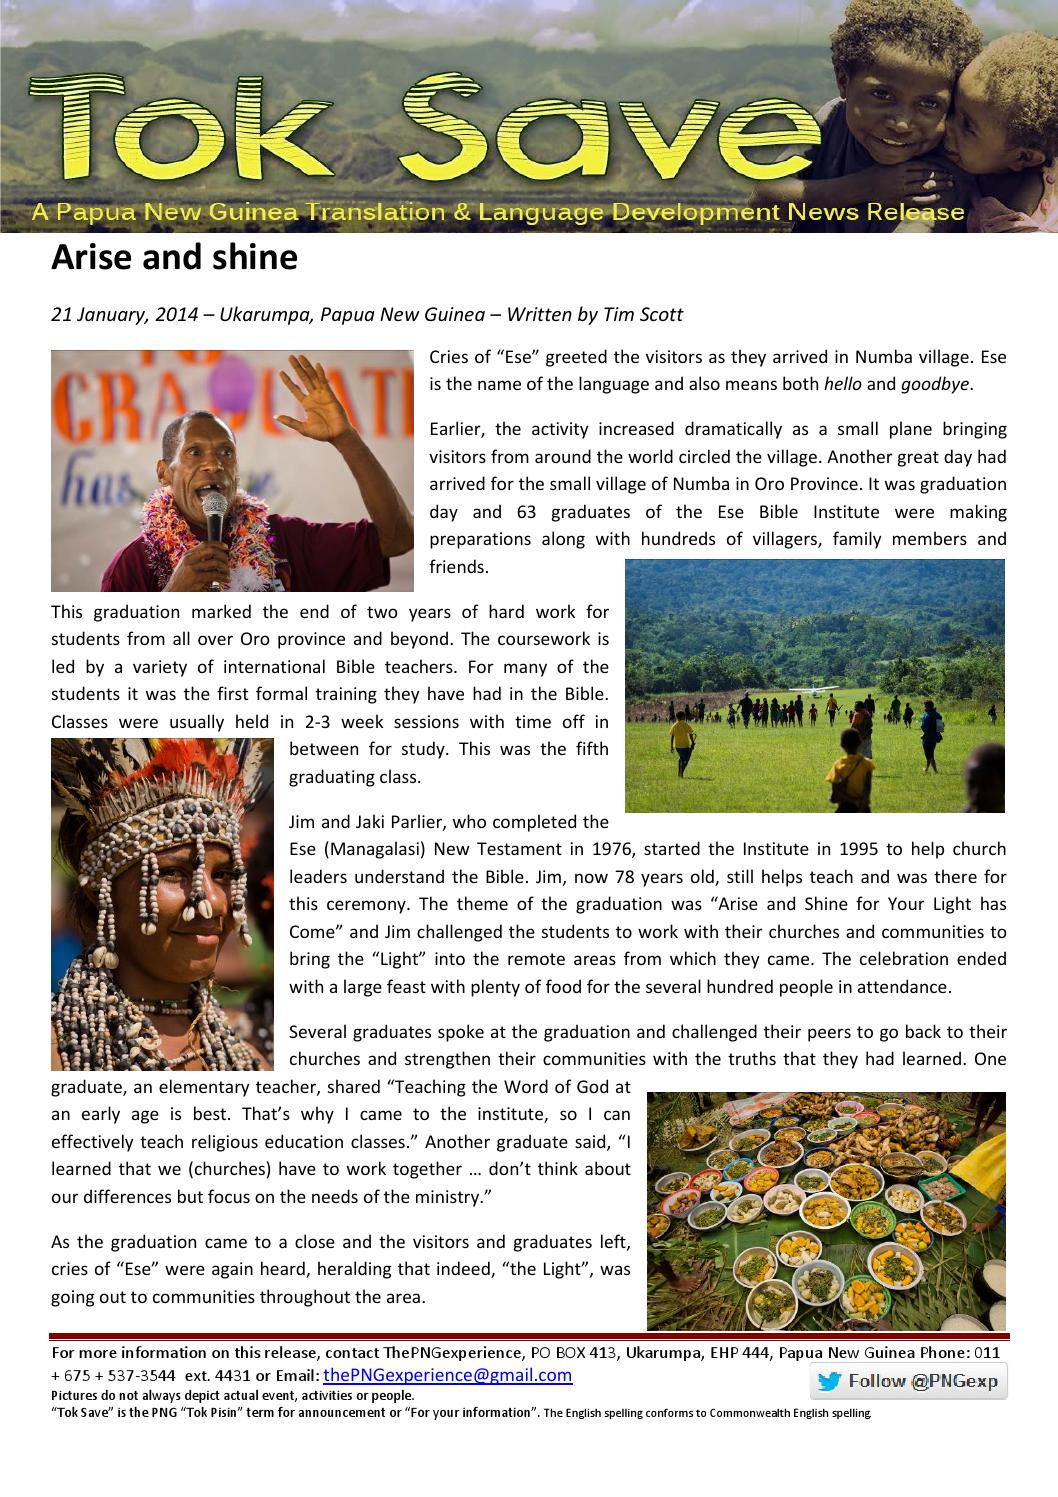 14 01 21 Arise and shine by The PNG Experience - issuu